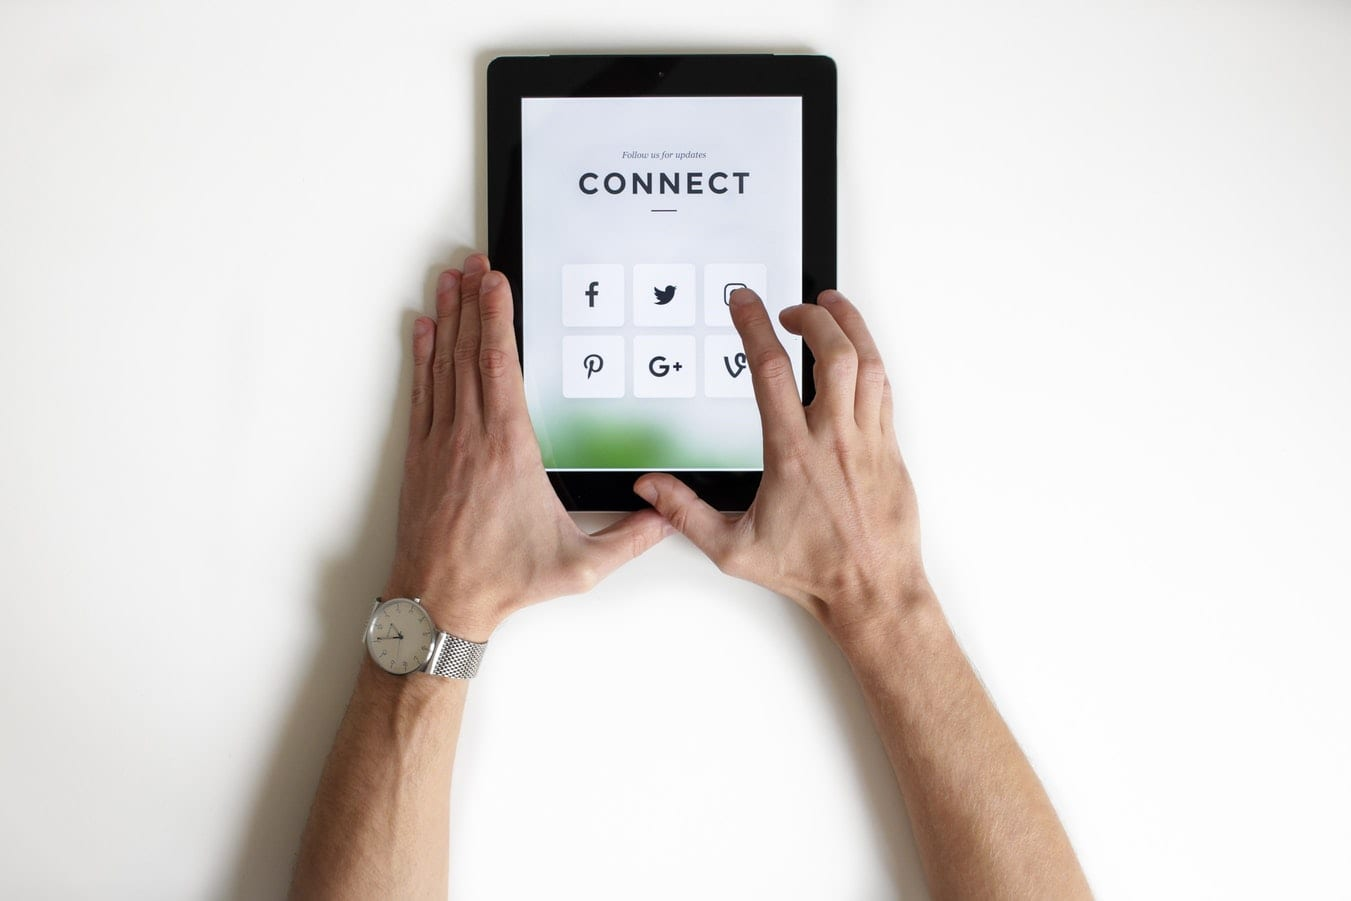 Social Media Marketing Guide for Launching a New Brand, Product or Service